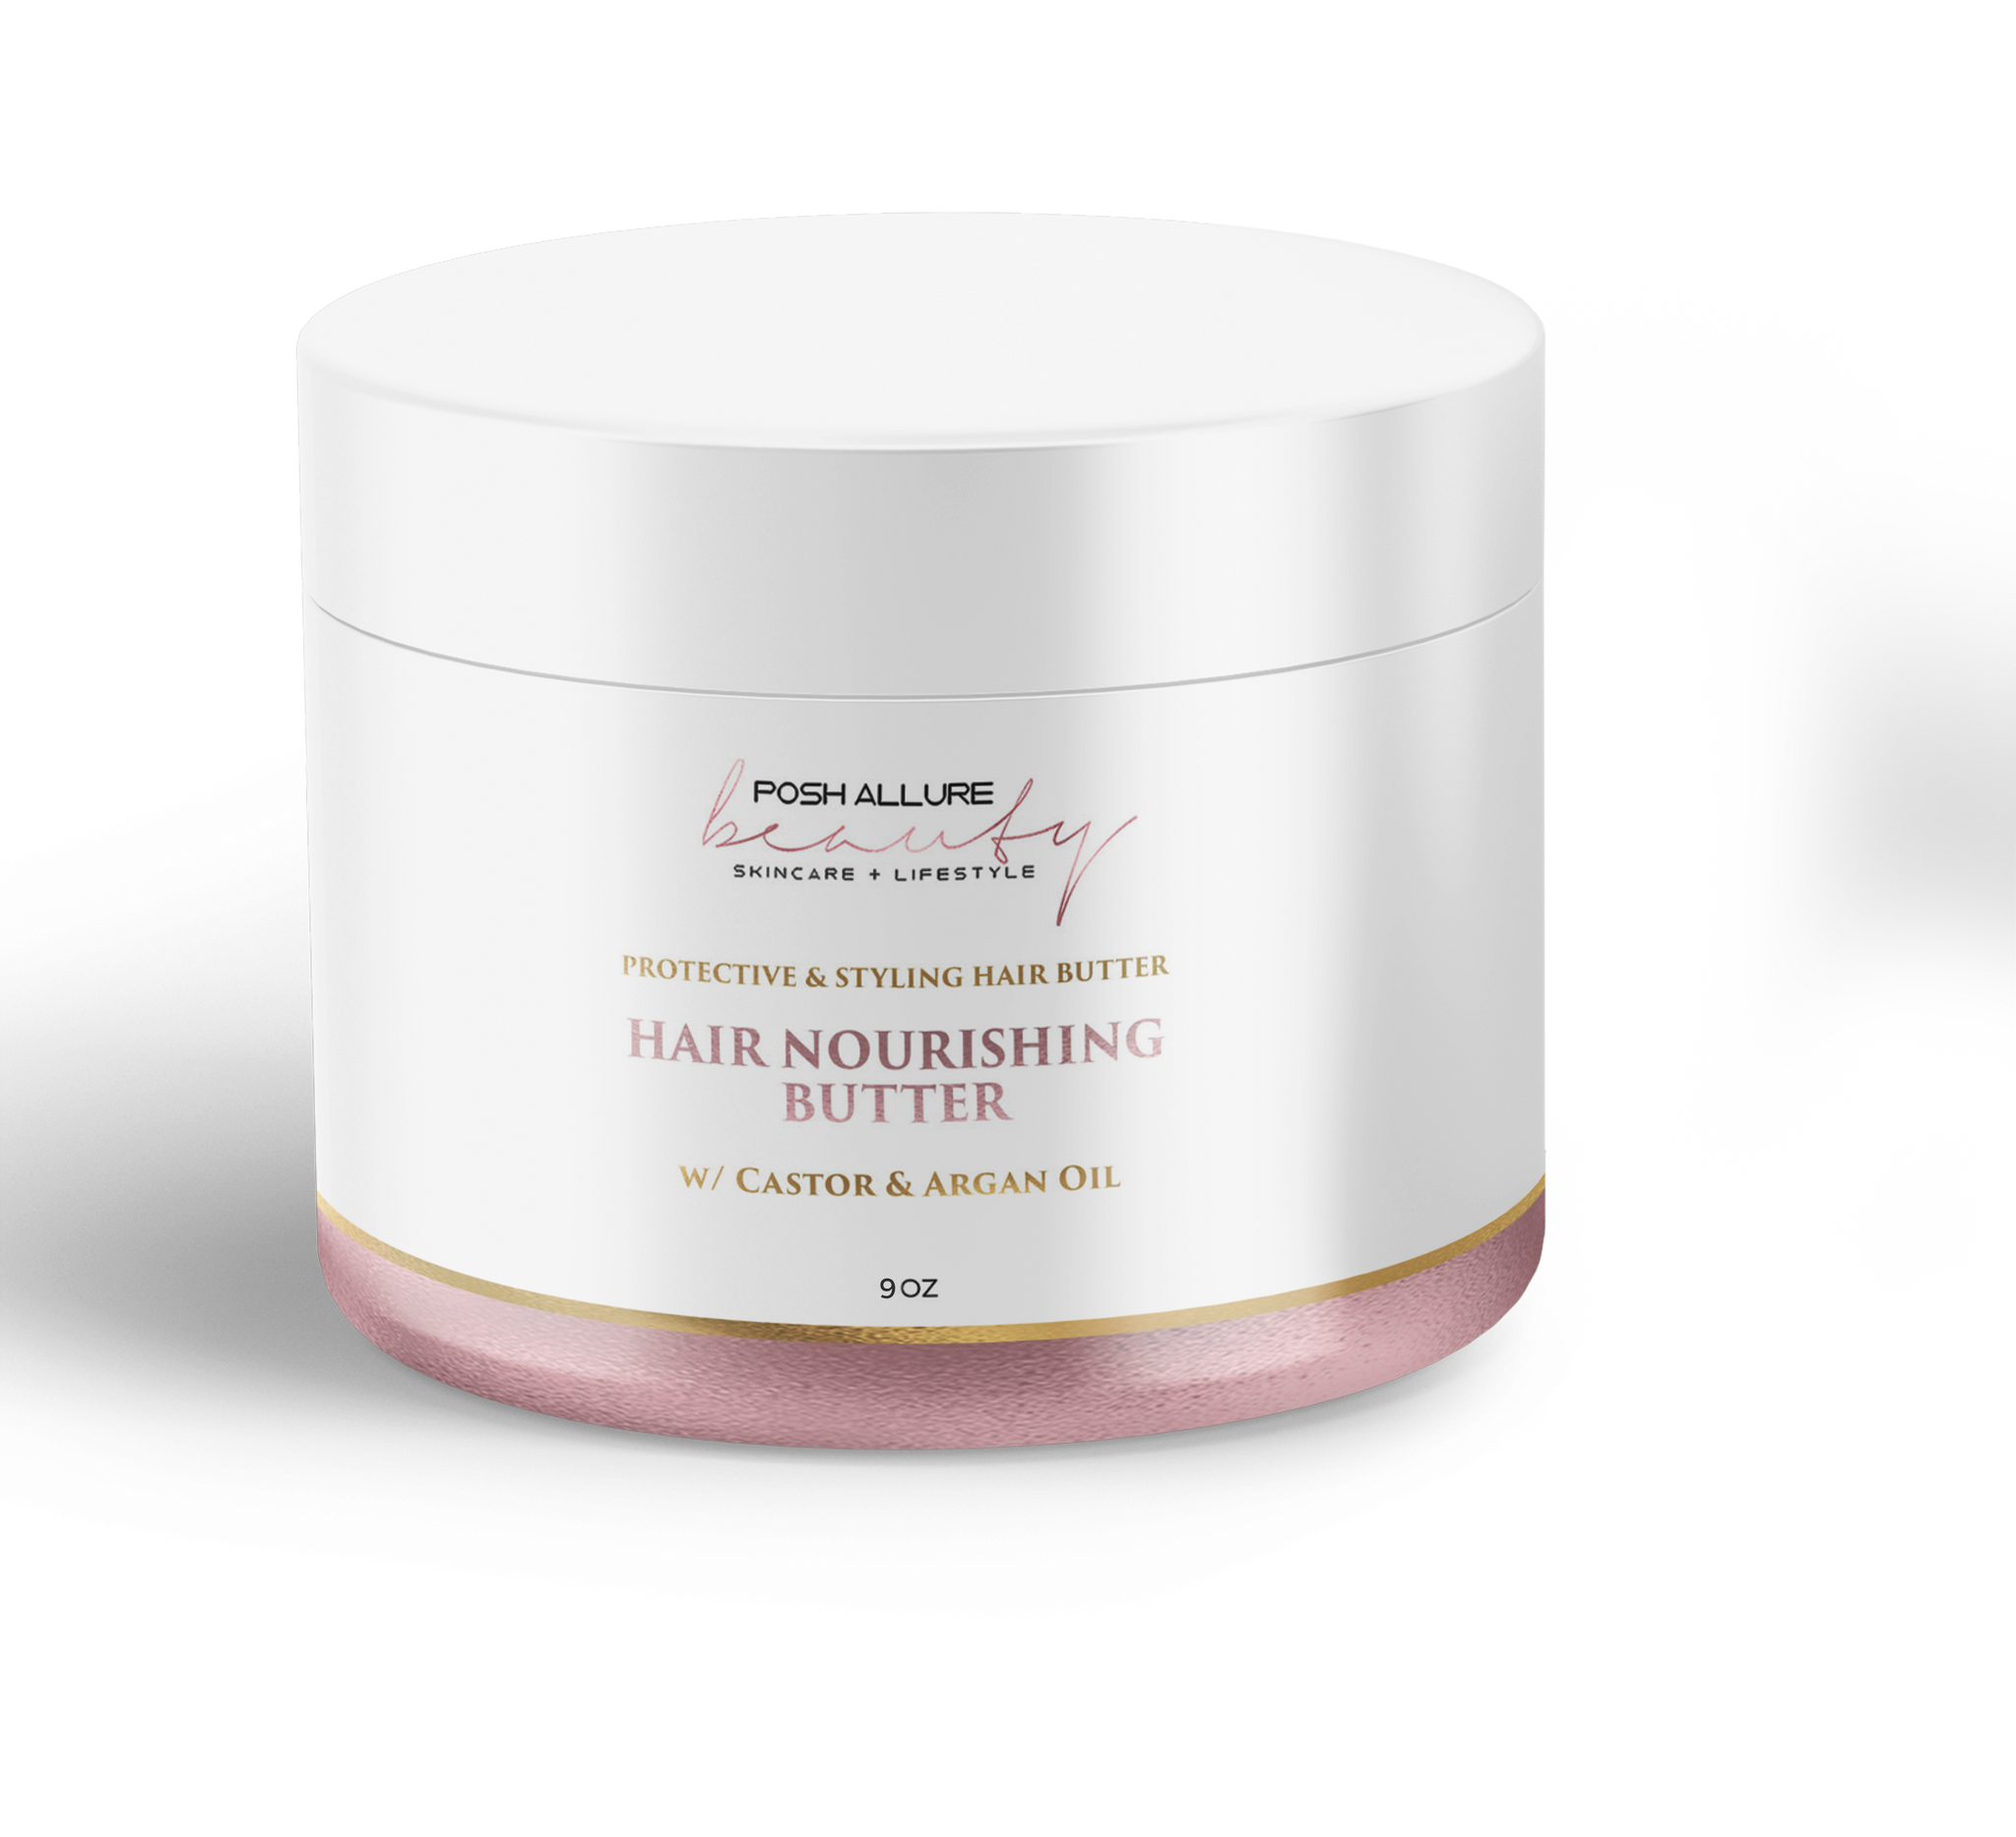 Hair Nourishing Butter - Posh|Allure Beauty